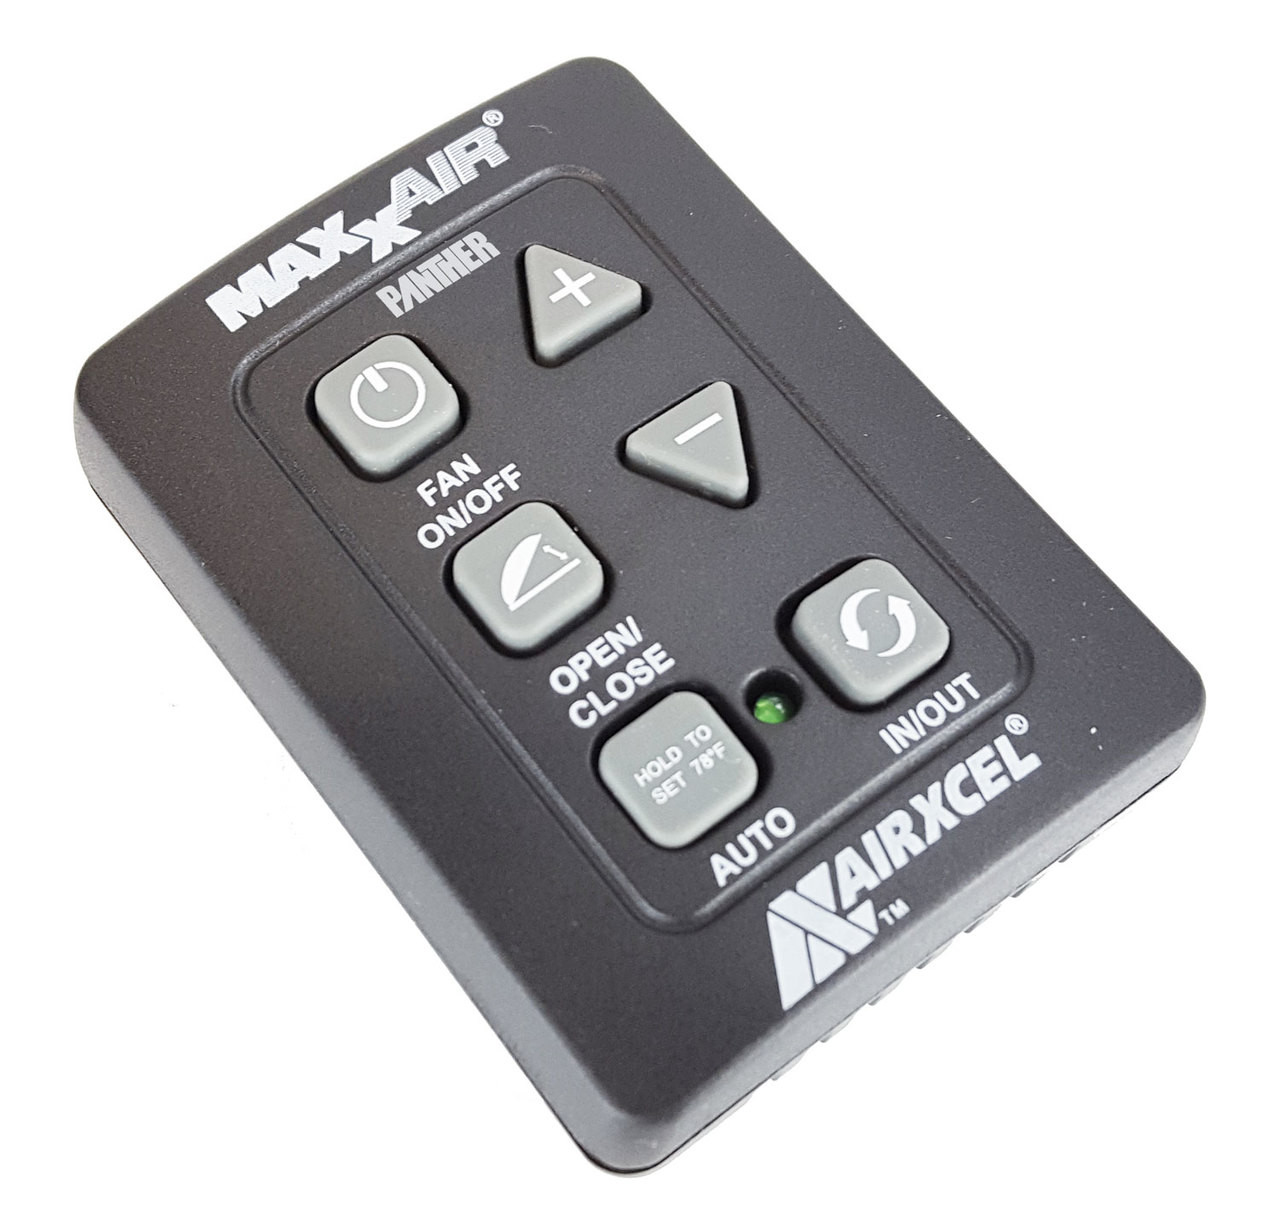 medium resolution of  maxxair 00a03650kit 6 button wall control for maxxfan plus and deluxe black